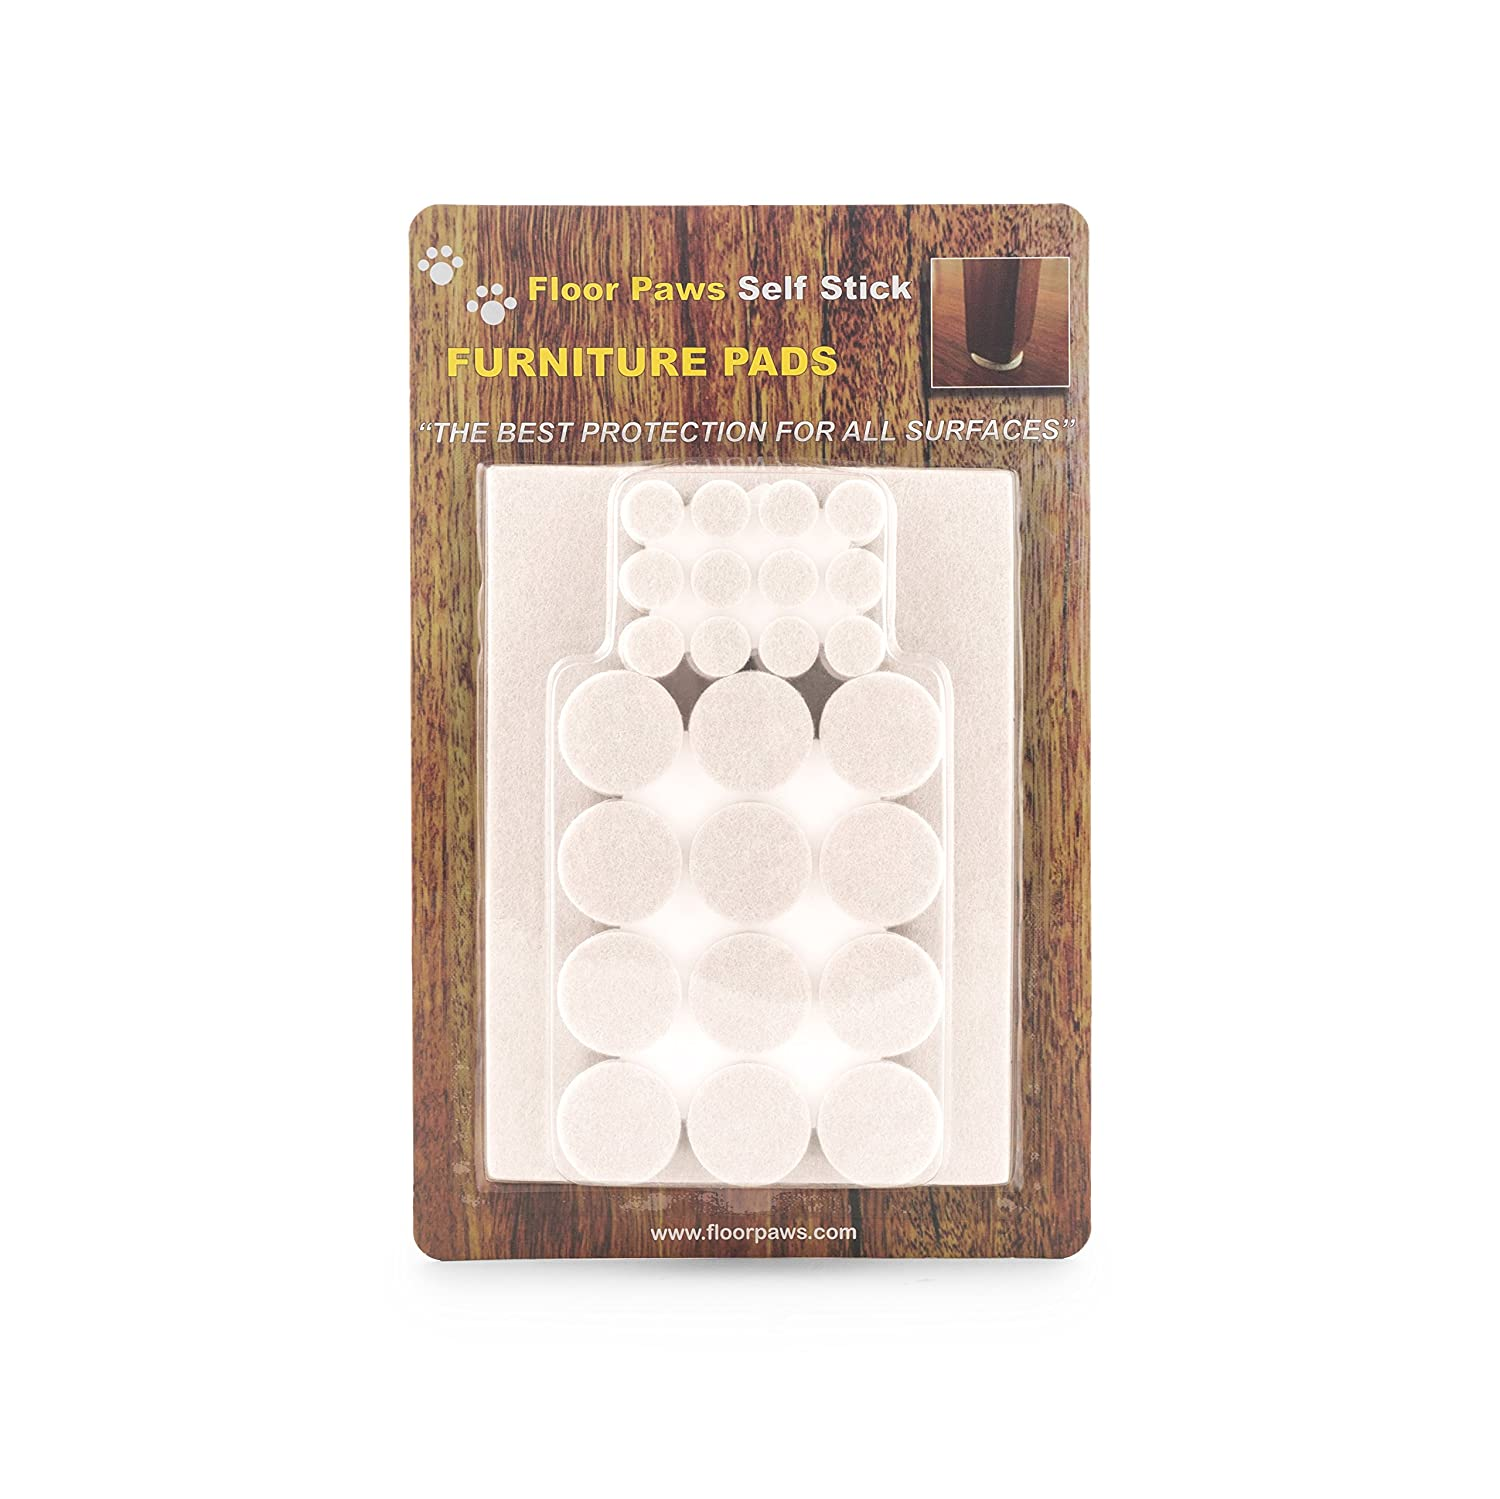 Amazon Best Furniture Pads 96 Adhesive Felt Furniture Pads